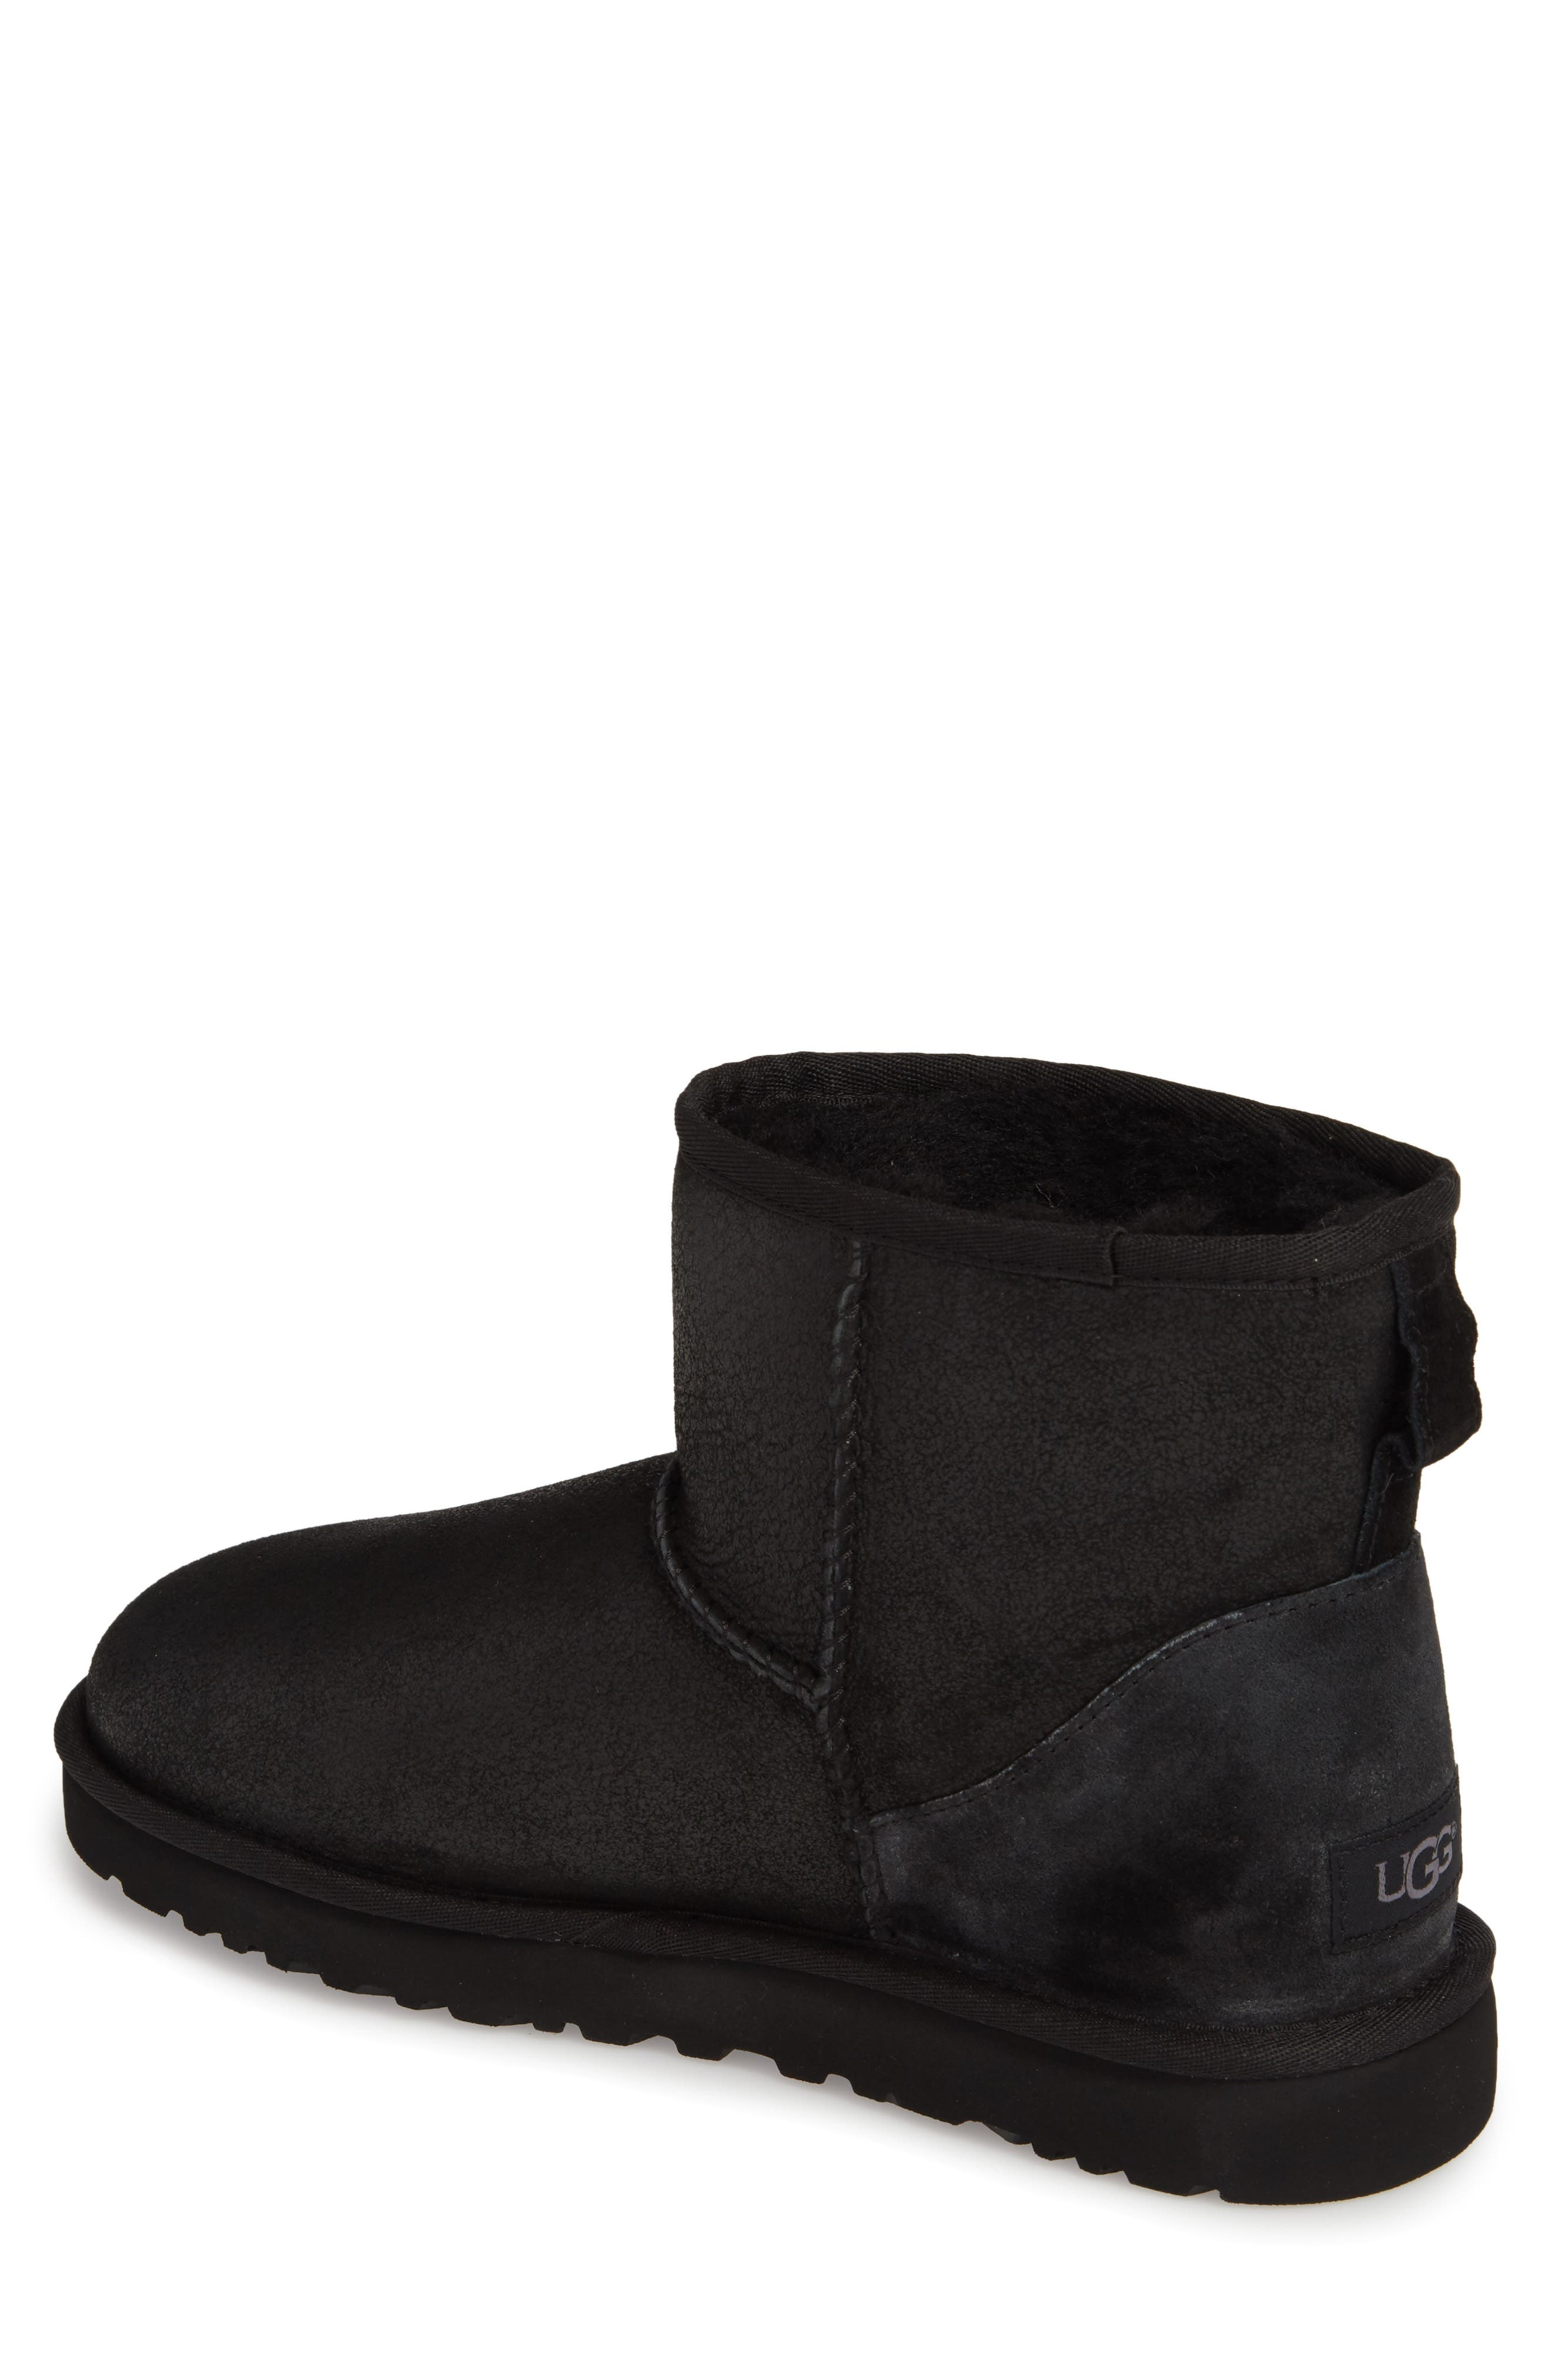 UGG<SUP>®</SUP>, Classic Mini Bomber Boot with Genuine Shearling or UGGpure<sup>™</sup> Lining, Alternate thumbnail 2, color, BOMBER JACKET BLACK